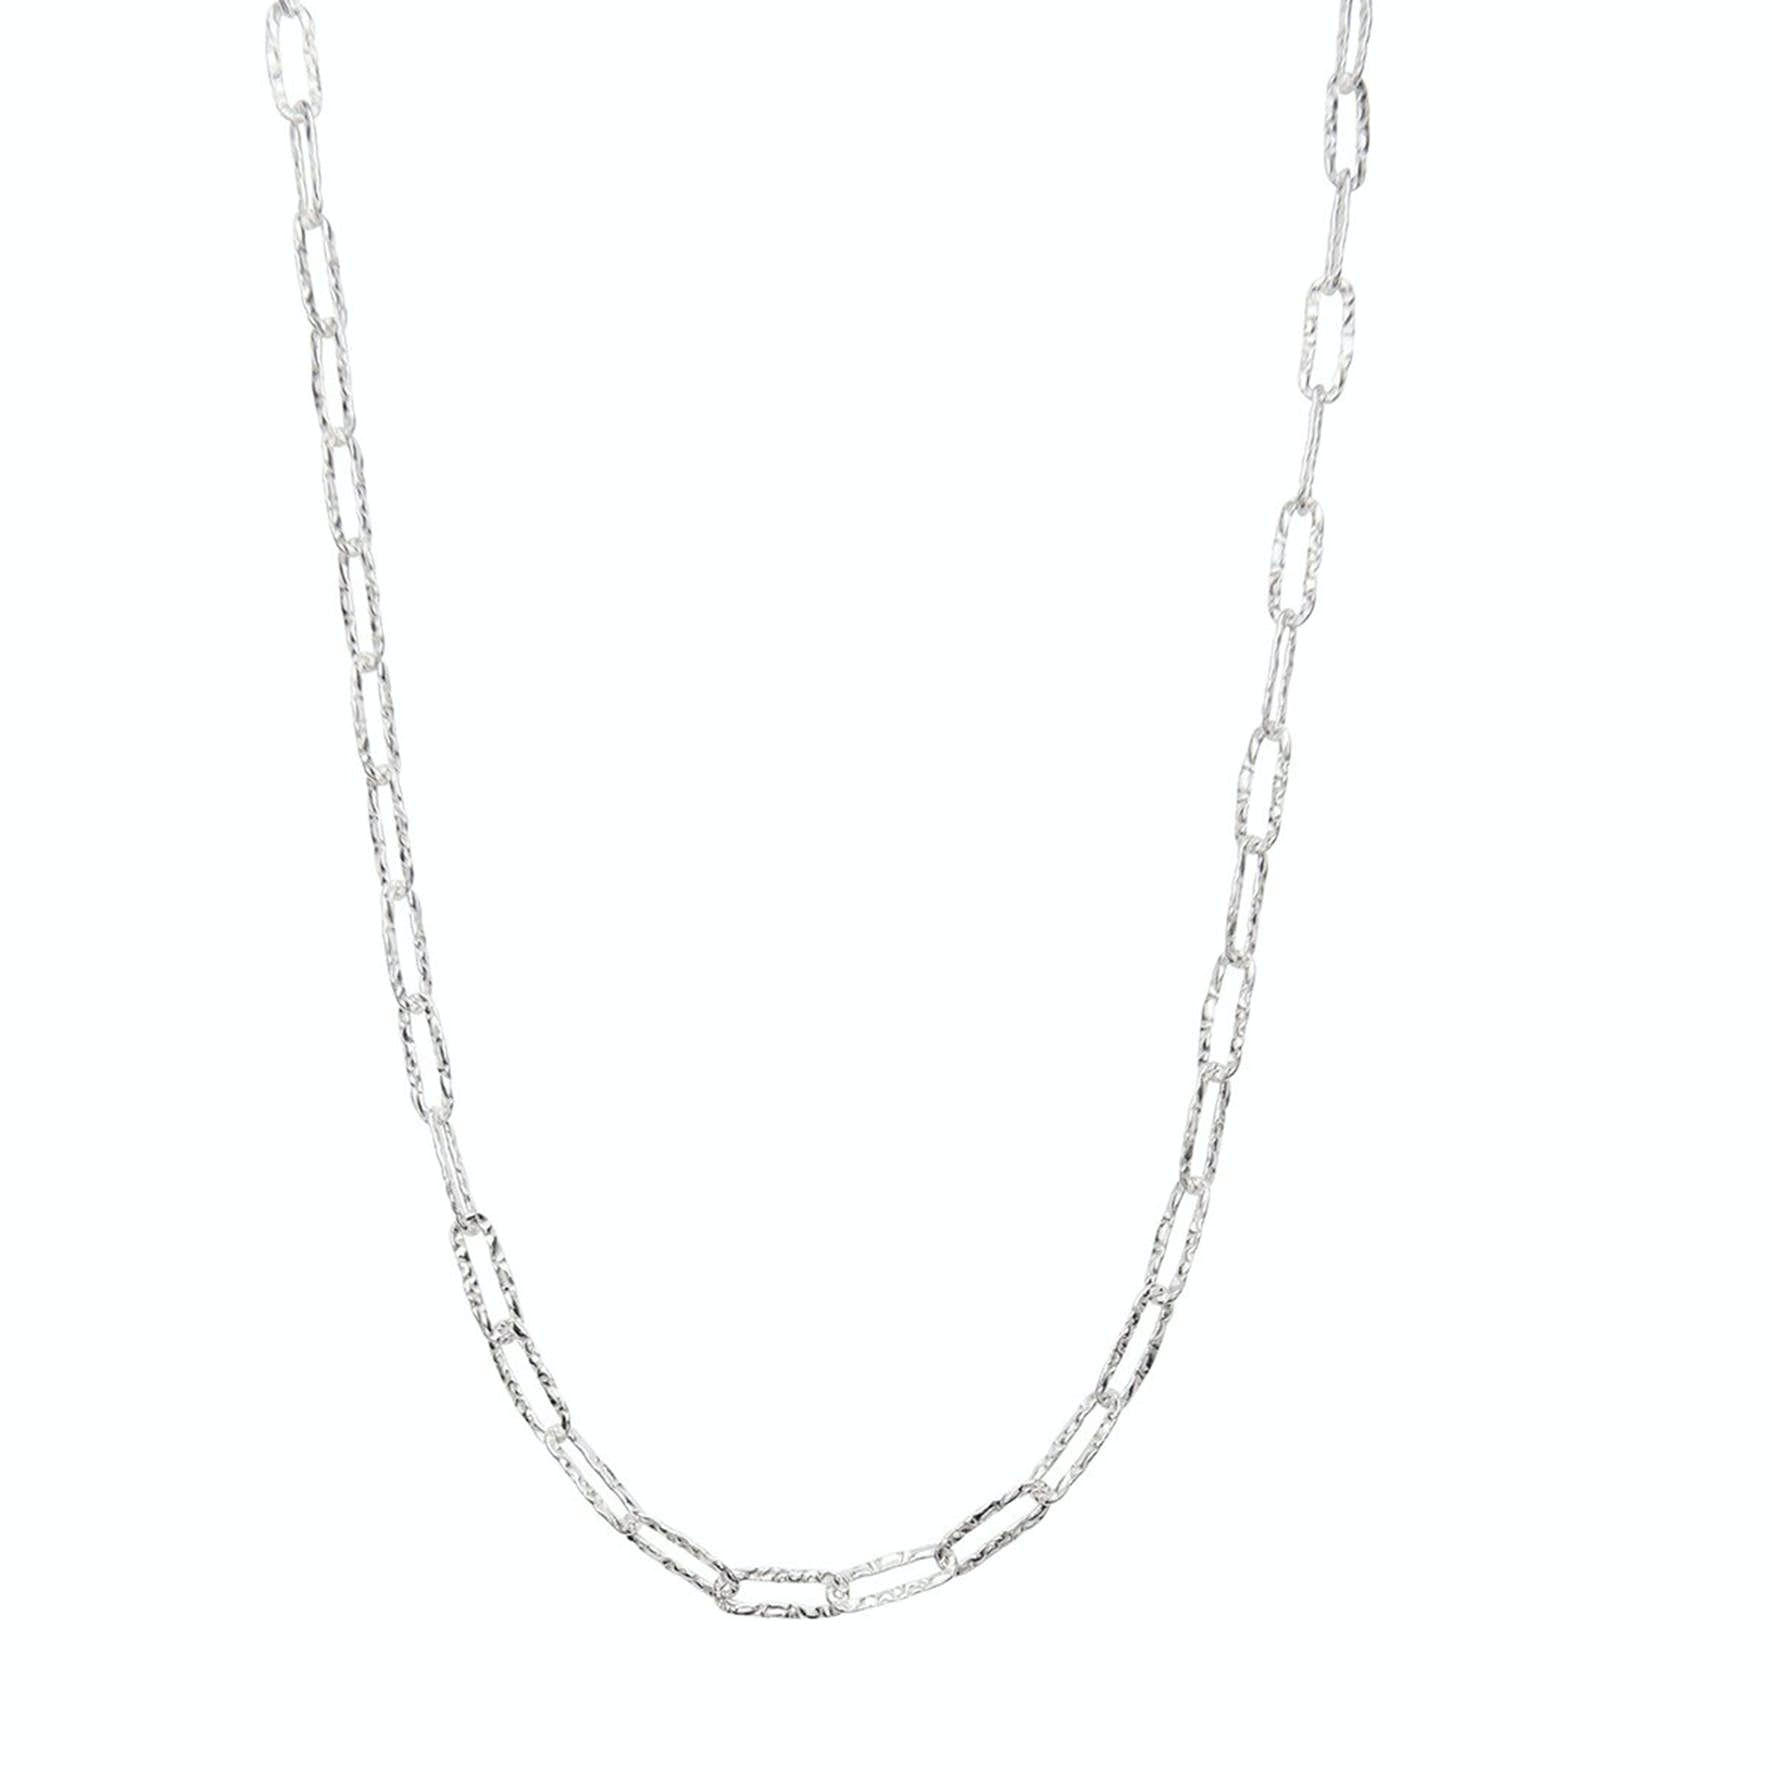 Ginny Necklace from Pico in Silver Sterling 925